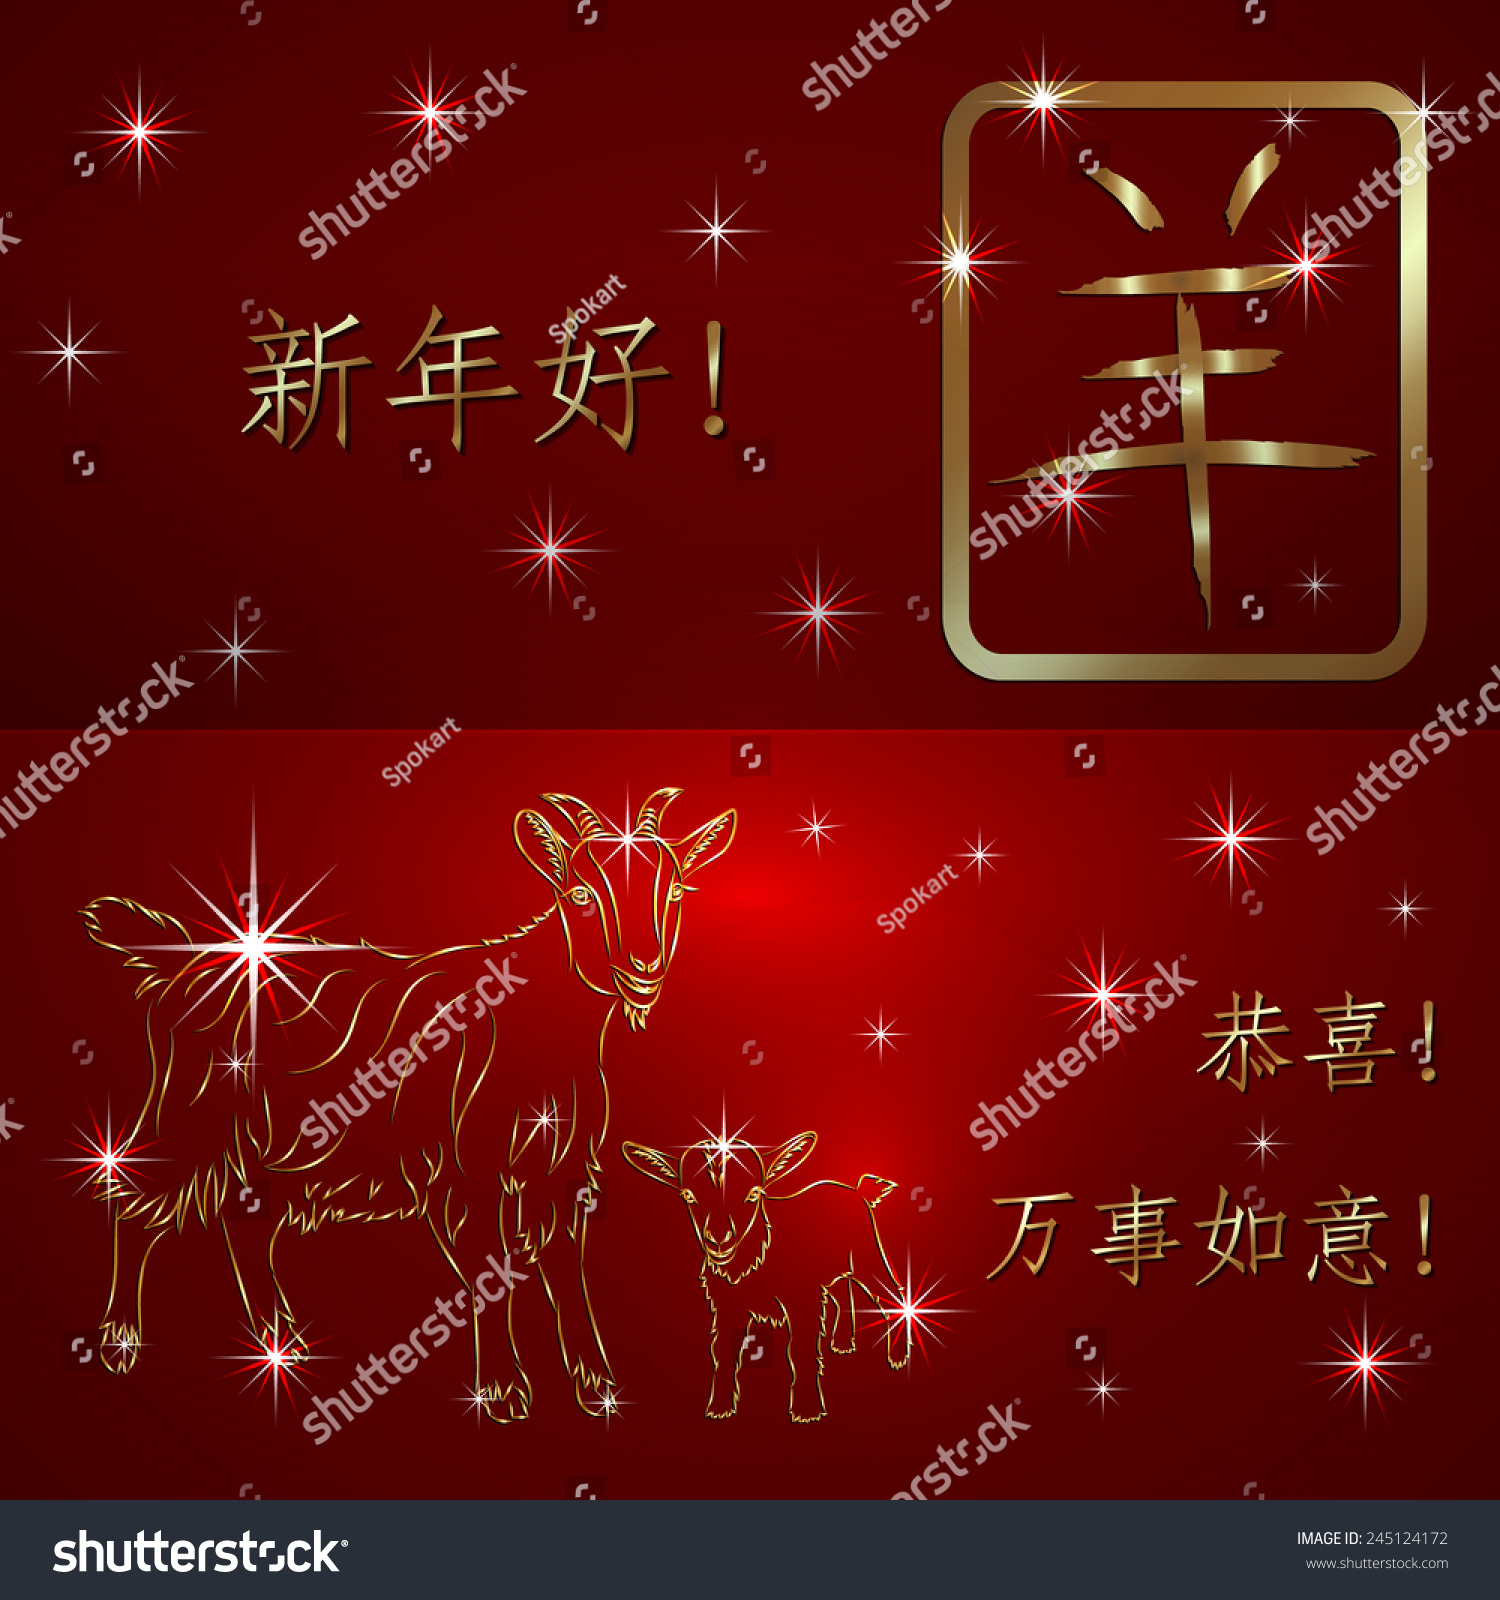 Chinese lunar new year 2015 greetings youtube 8728728 pacte contre this site contains information about chinese lunar new year 2015 greetings youtube m4hsunfo